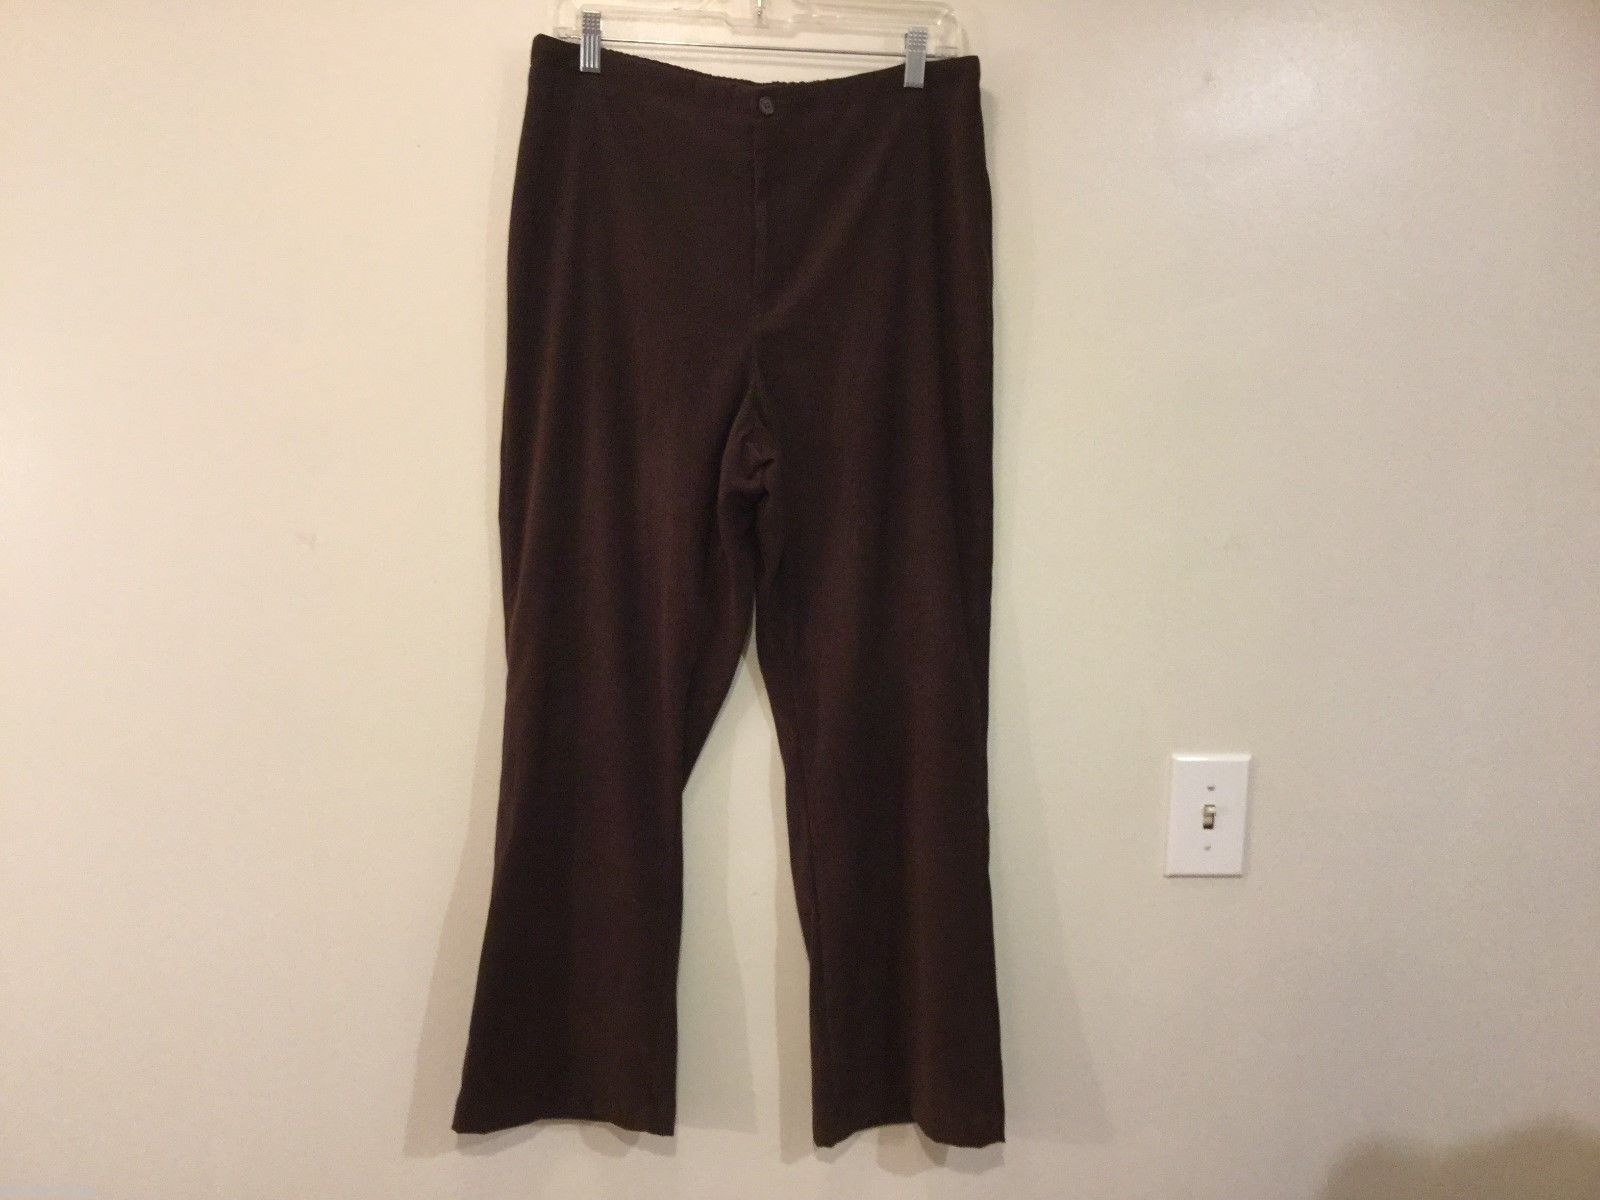 White Stag Womans Brown Pants, Size 14